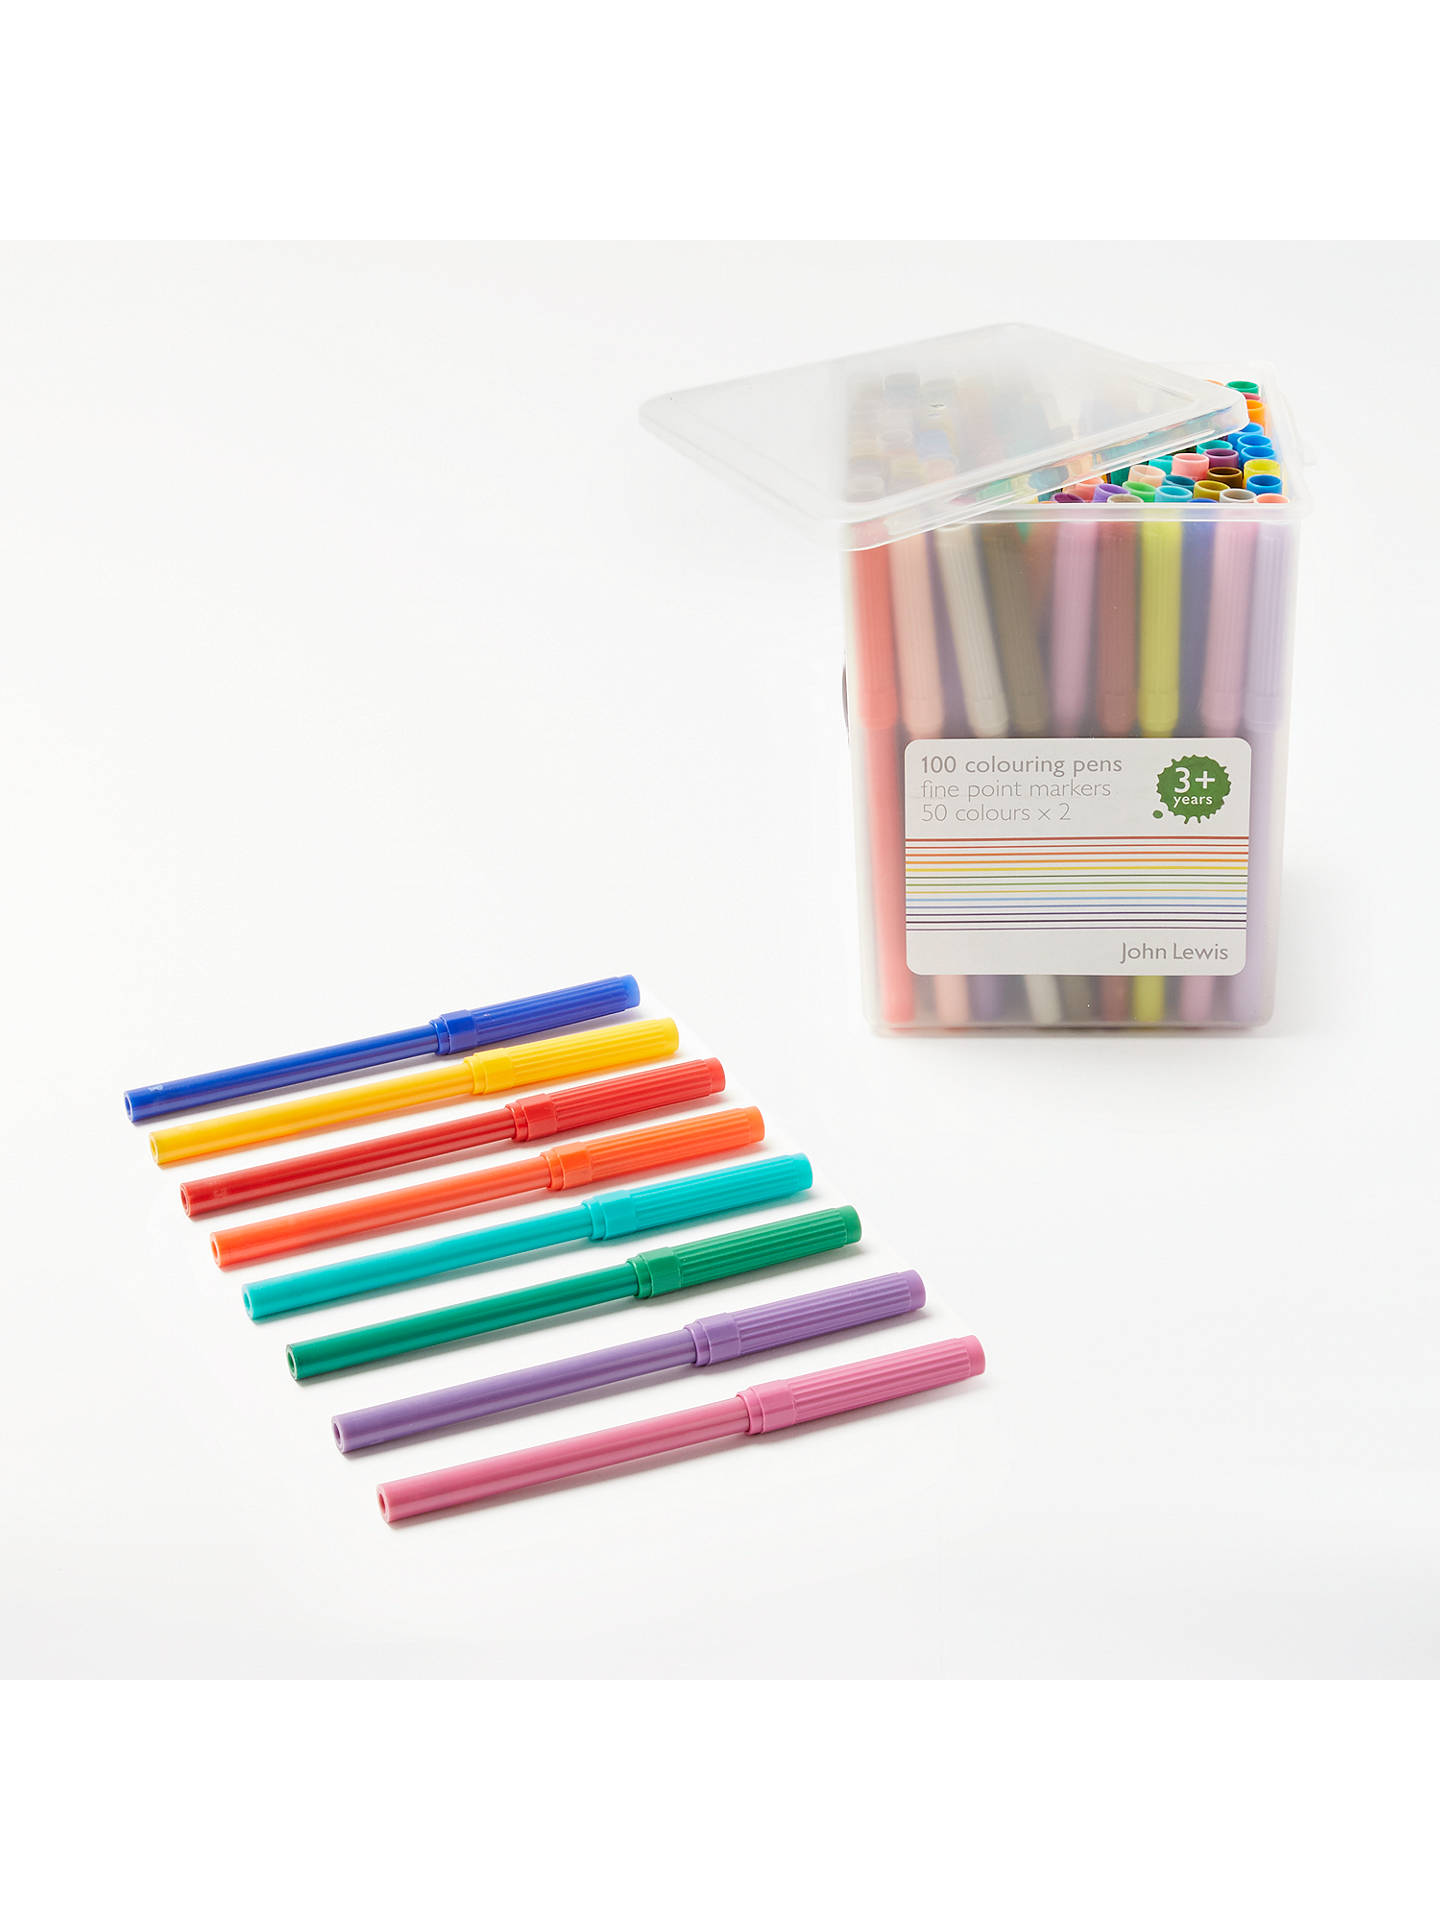 BuyJohn Lewis & Partners Colouring Pens in a Tub, Pack of 100 Online at johnlewis.com